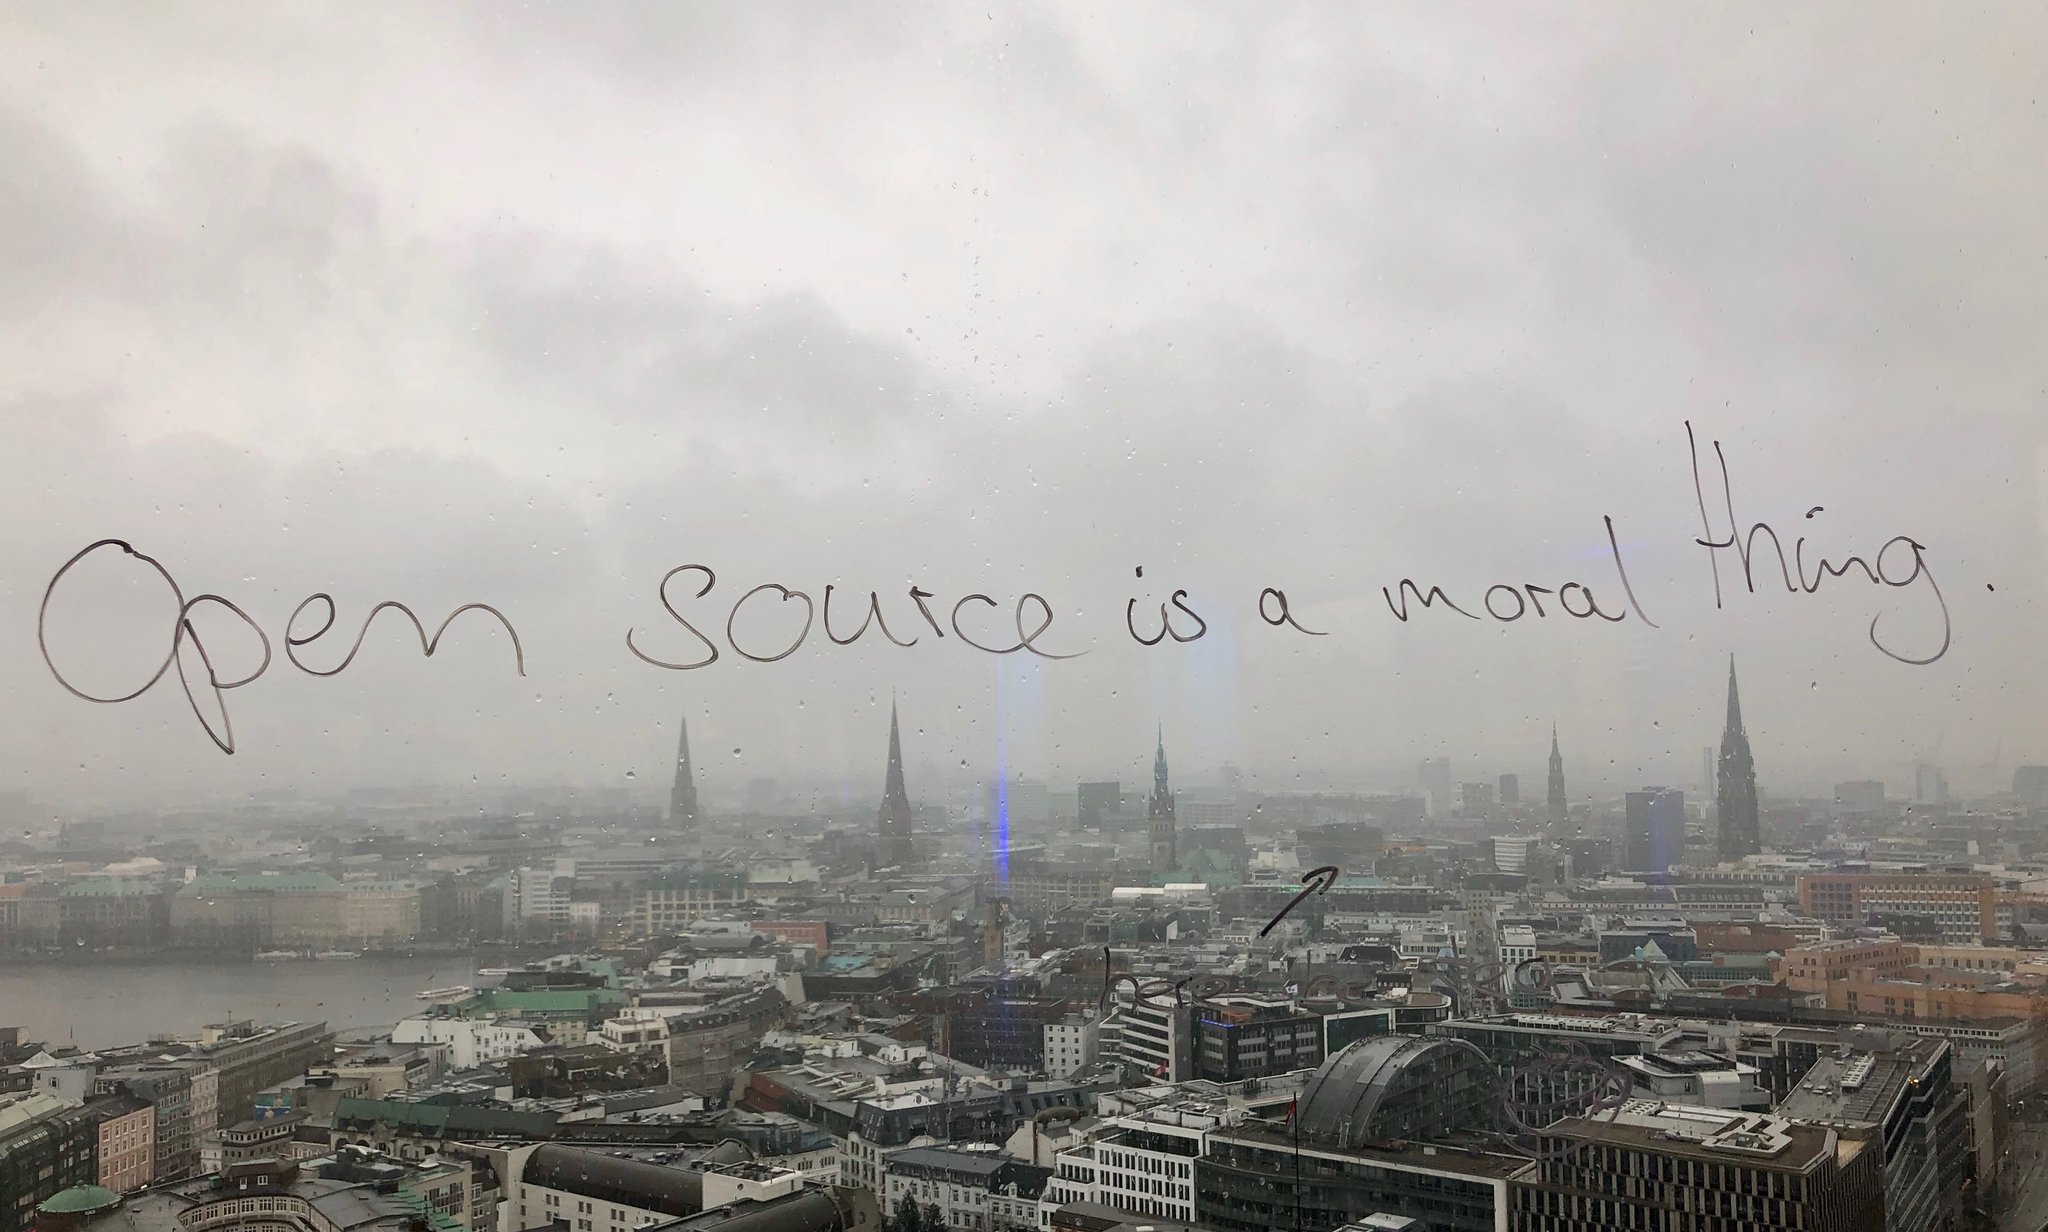 "Skyline of Hamburg, with ""Open source is a moral thing"" written on the window pane."